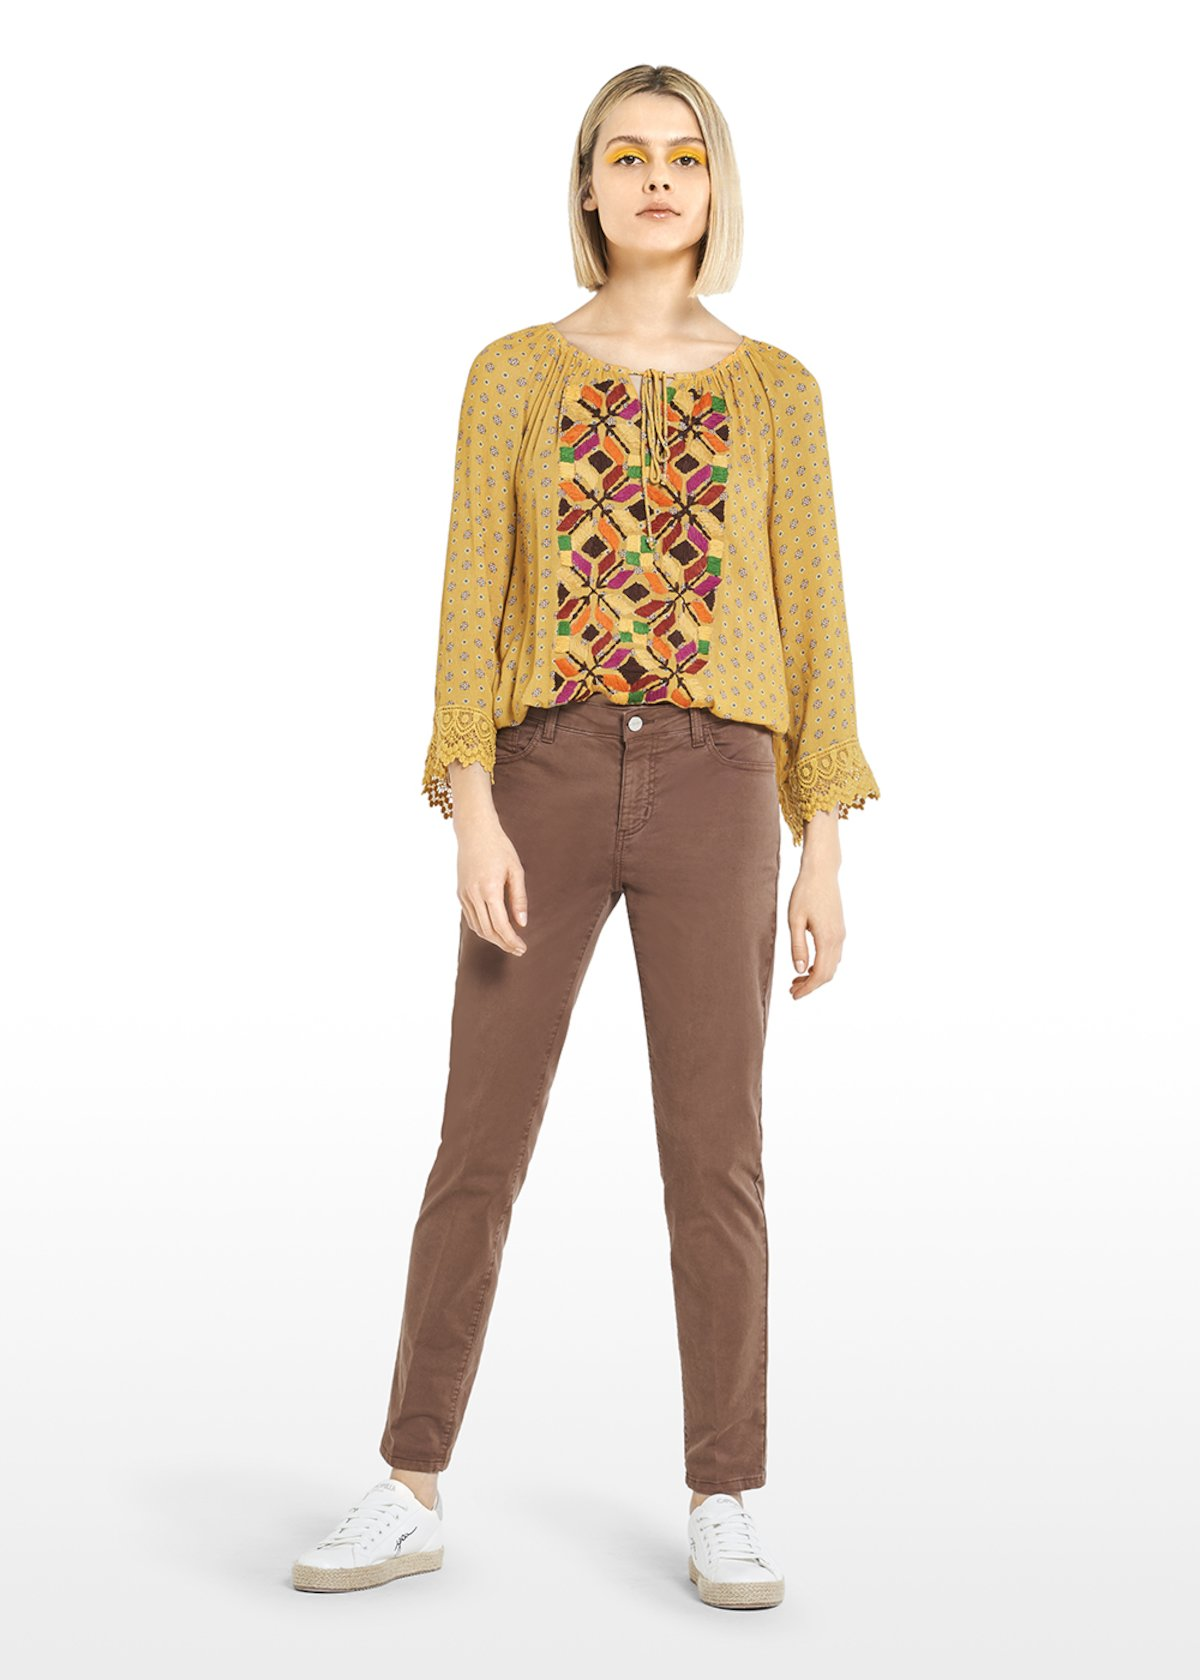 Candid crepe micro-patterned blouse with lace embroidery at cuffs